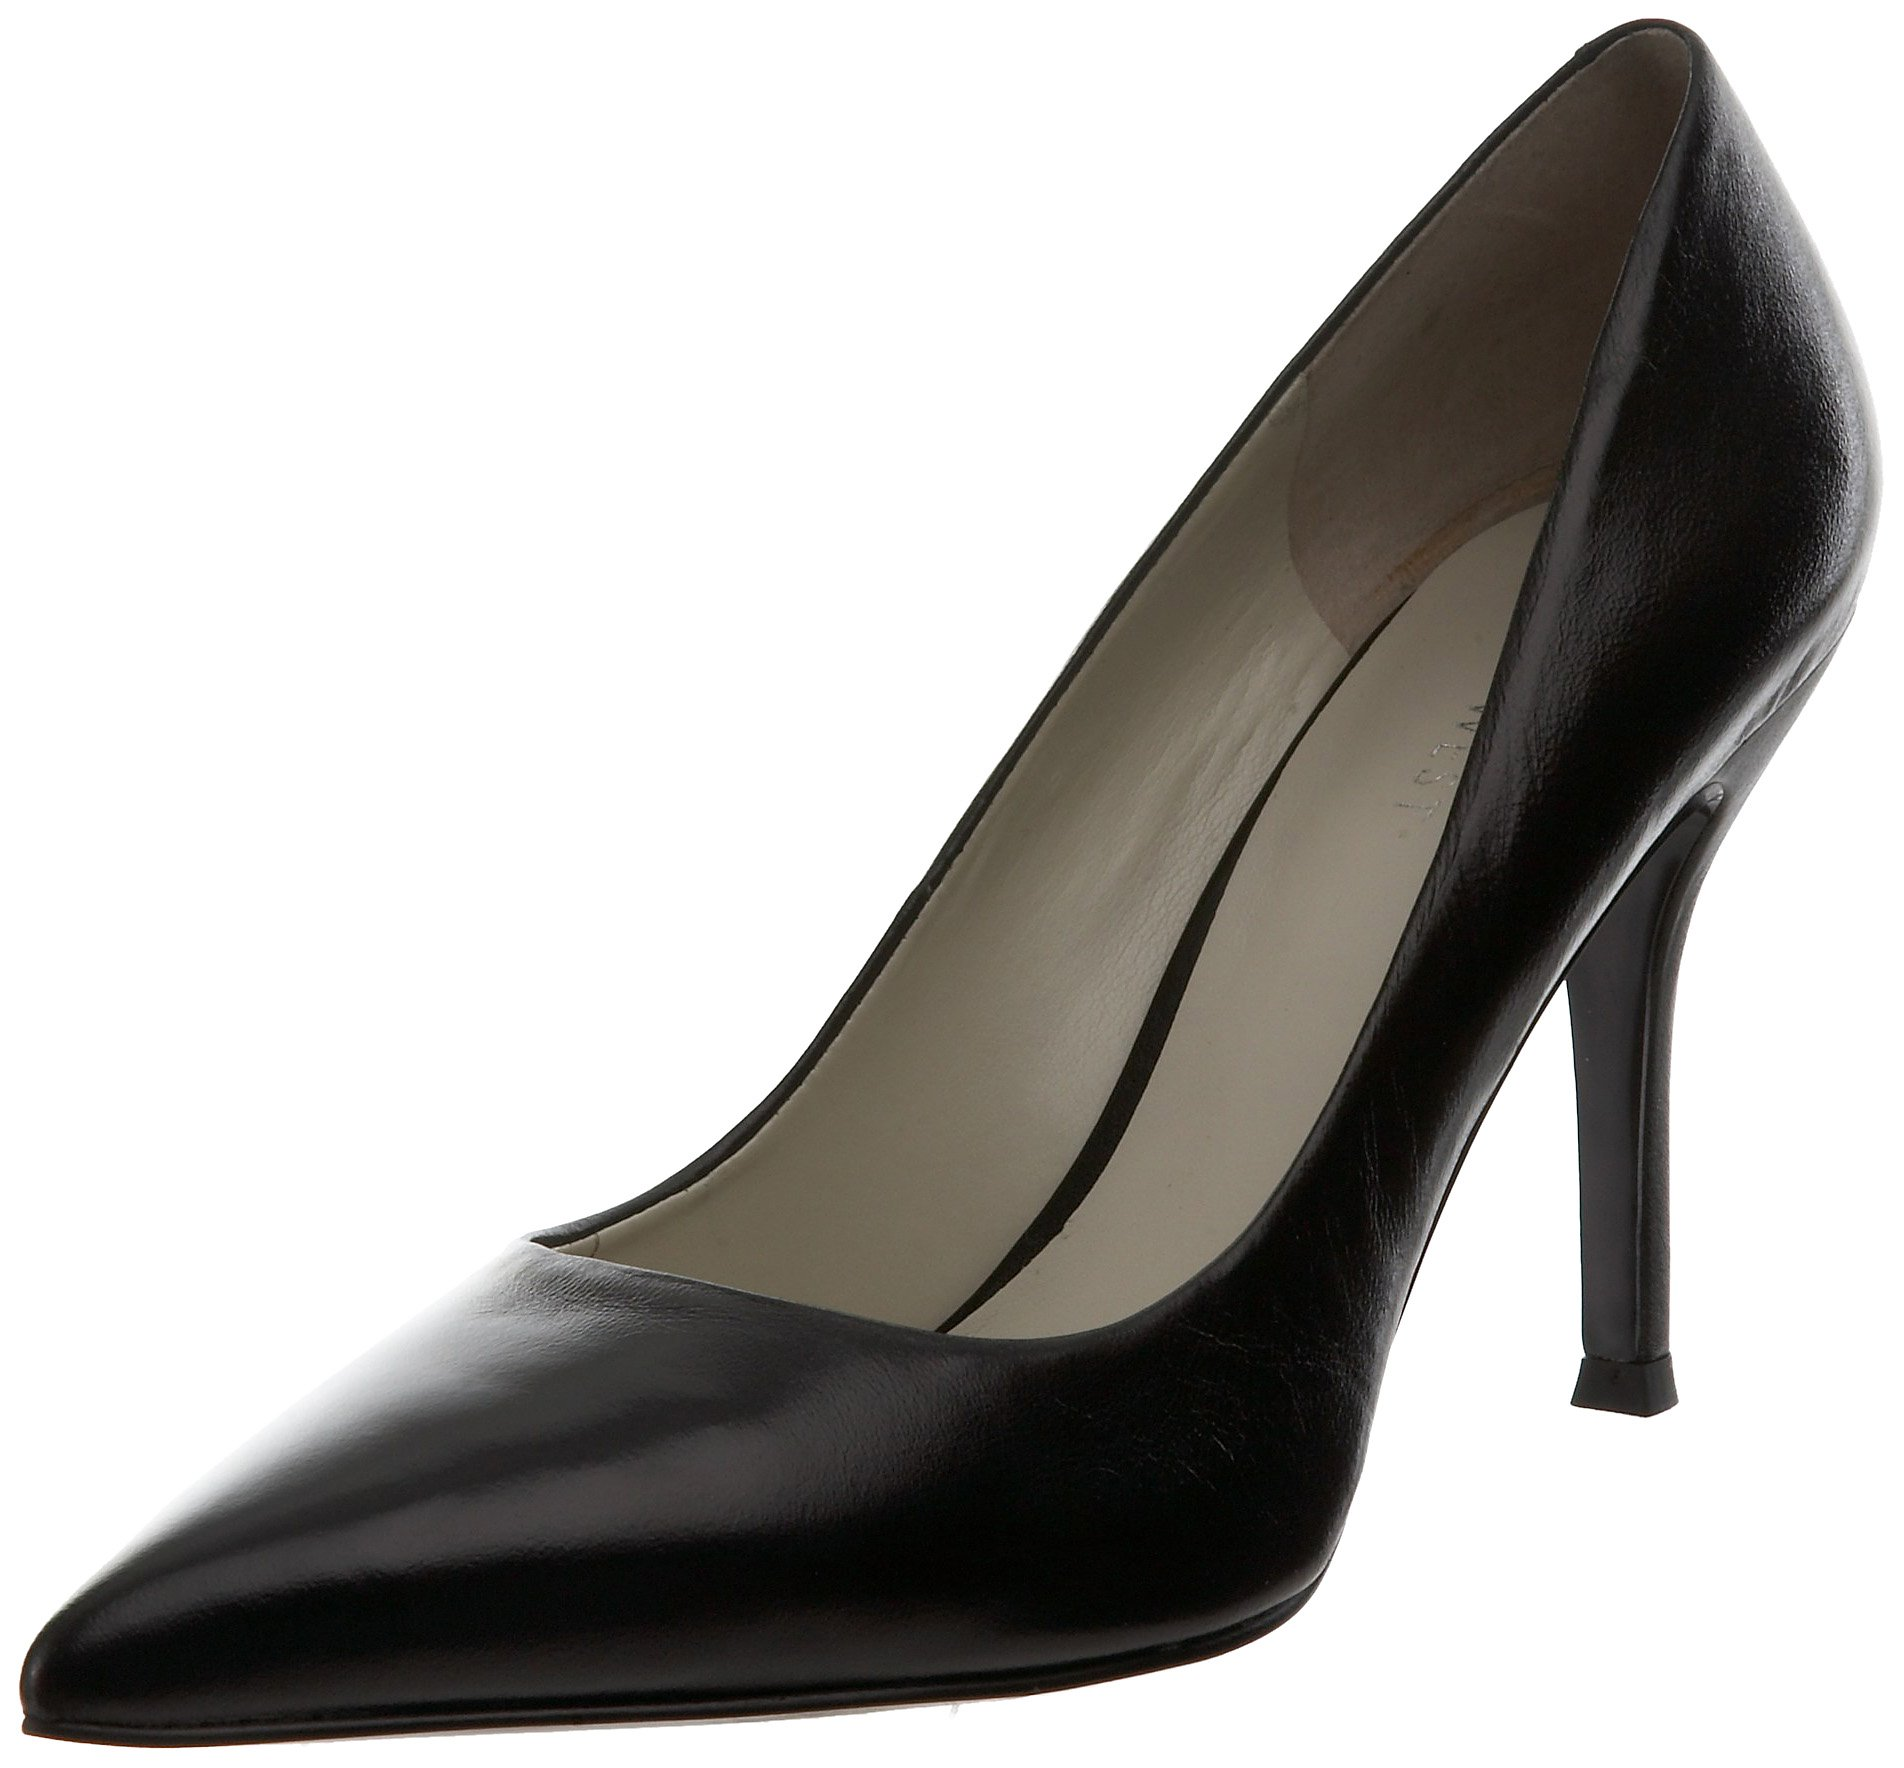 Nine West Women's Flax Synthetic Dress Pump, Black Leather, 7.5 M US by Nine West